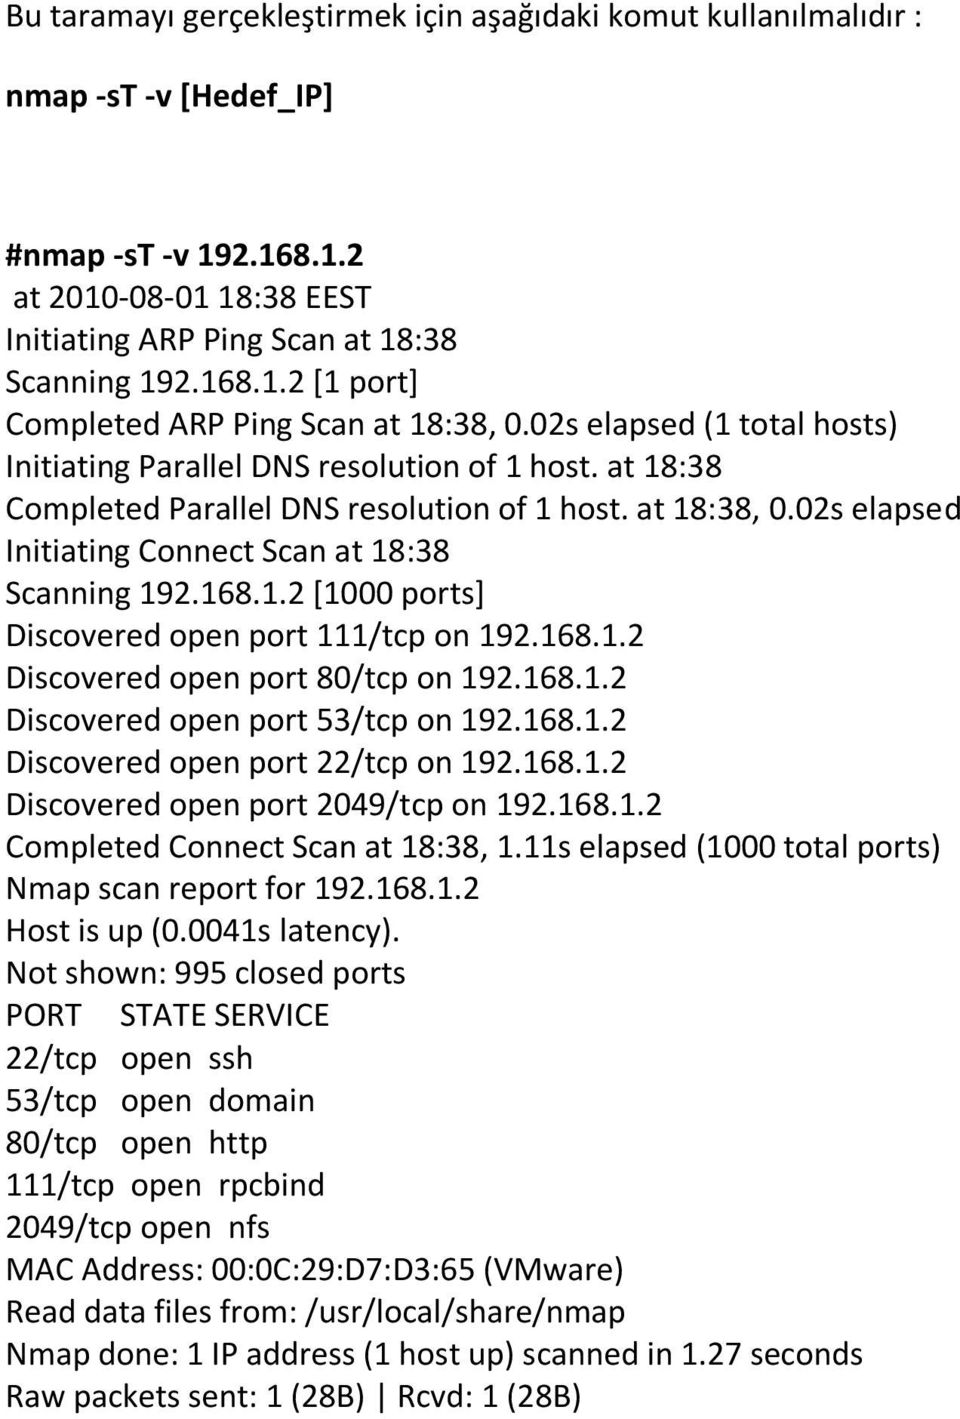 168.1.2 [1000 ports] Discovered open port 111/tcp on 192.168.1.2 Discovered open port 80/tcp on 192.168.1.2 Discovered open port 53/tcp on 192.168.1.2 Discovered open port 22/tcp on 192.168.1.2 Discovered open port 2049/tcp on 192.